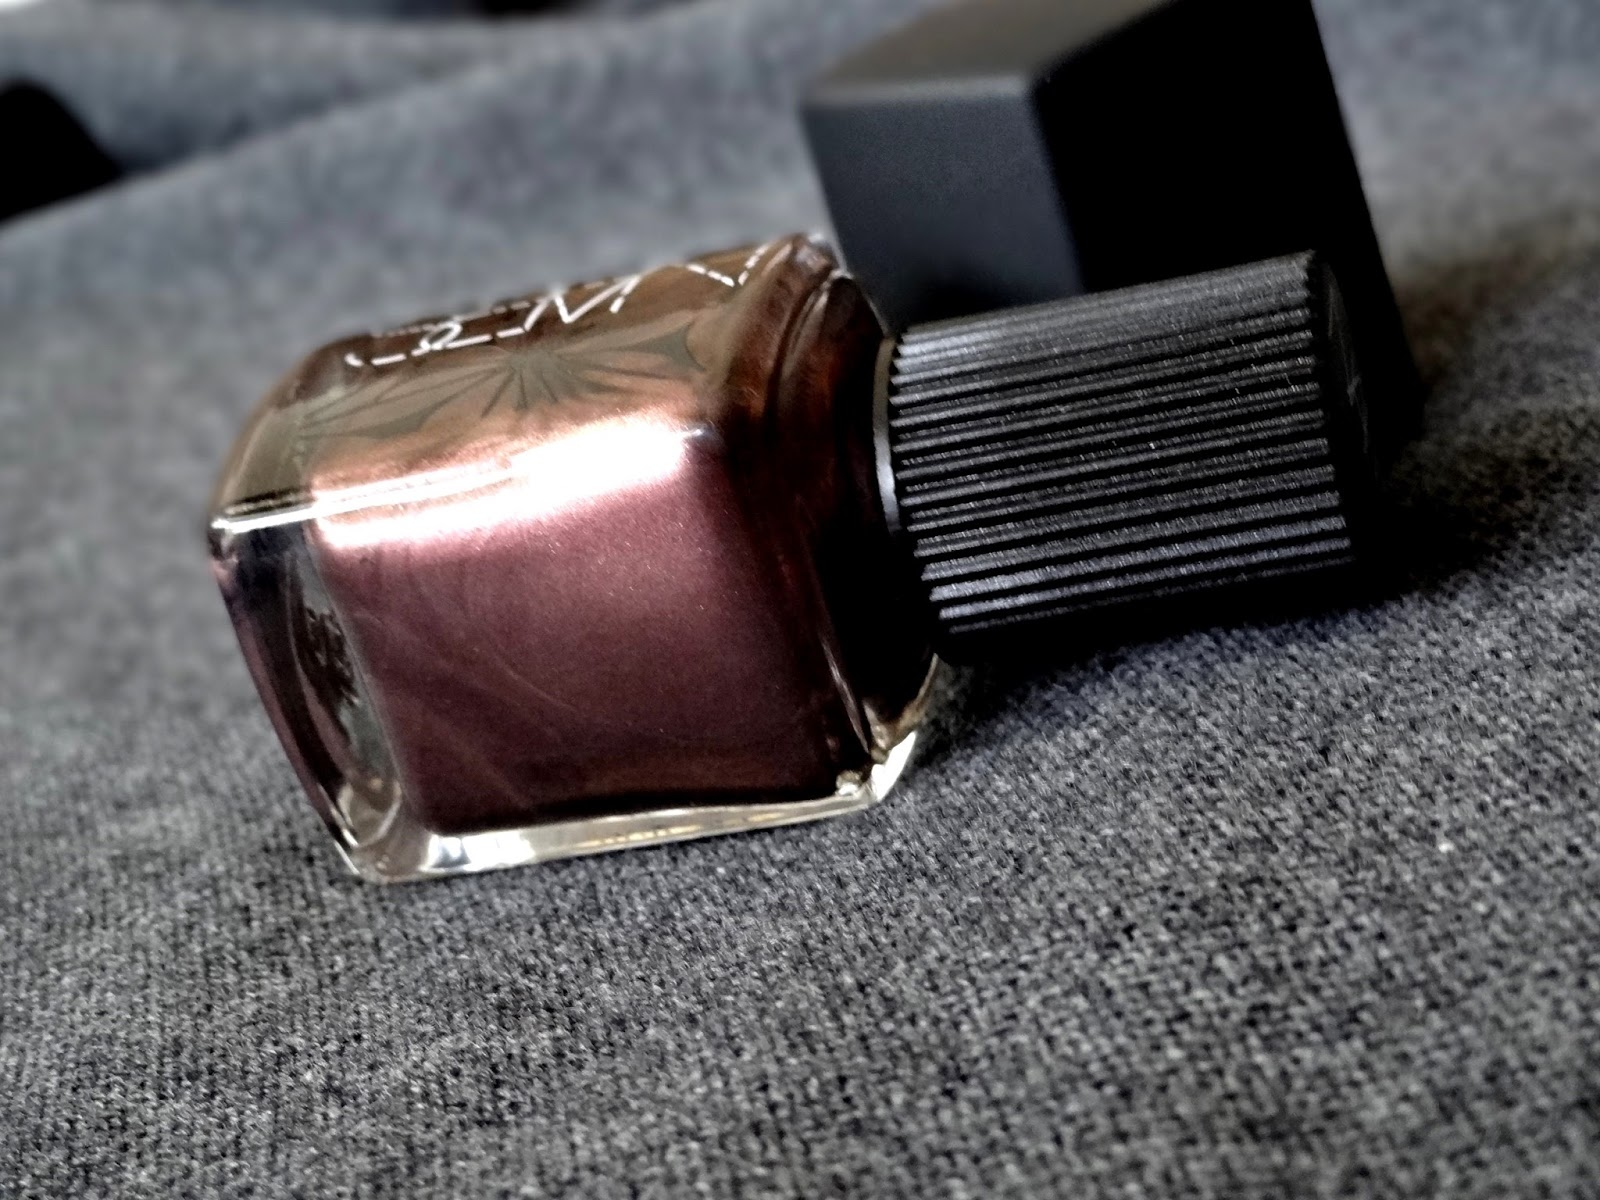 NARS Laced with Edge Holiday Collection Sherwood Nail Polish Review, Photos & Swatches-001